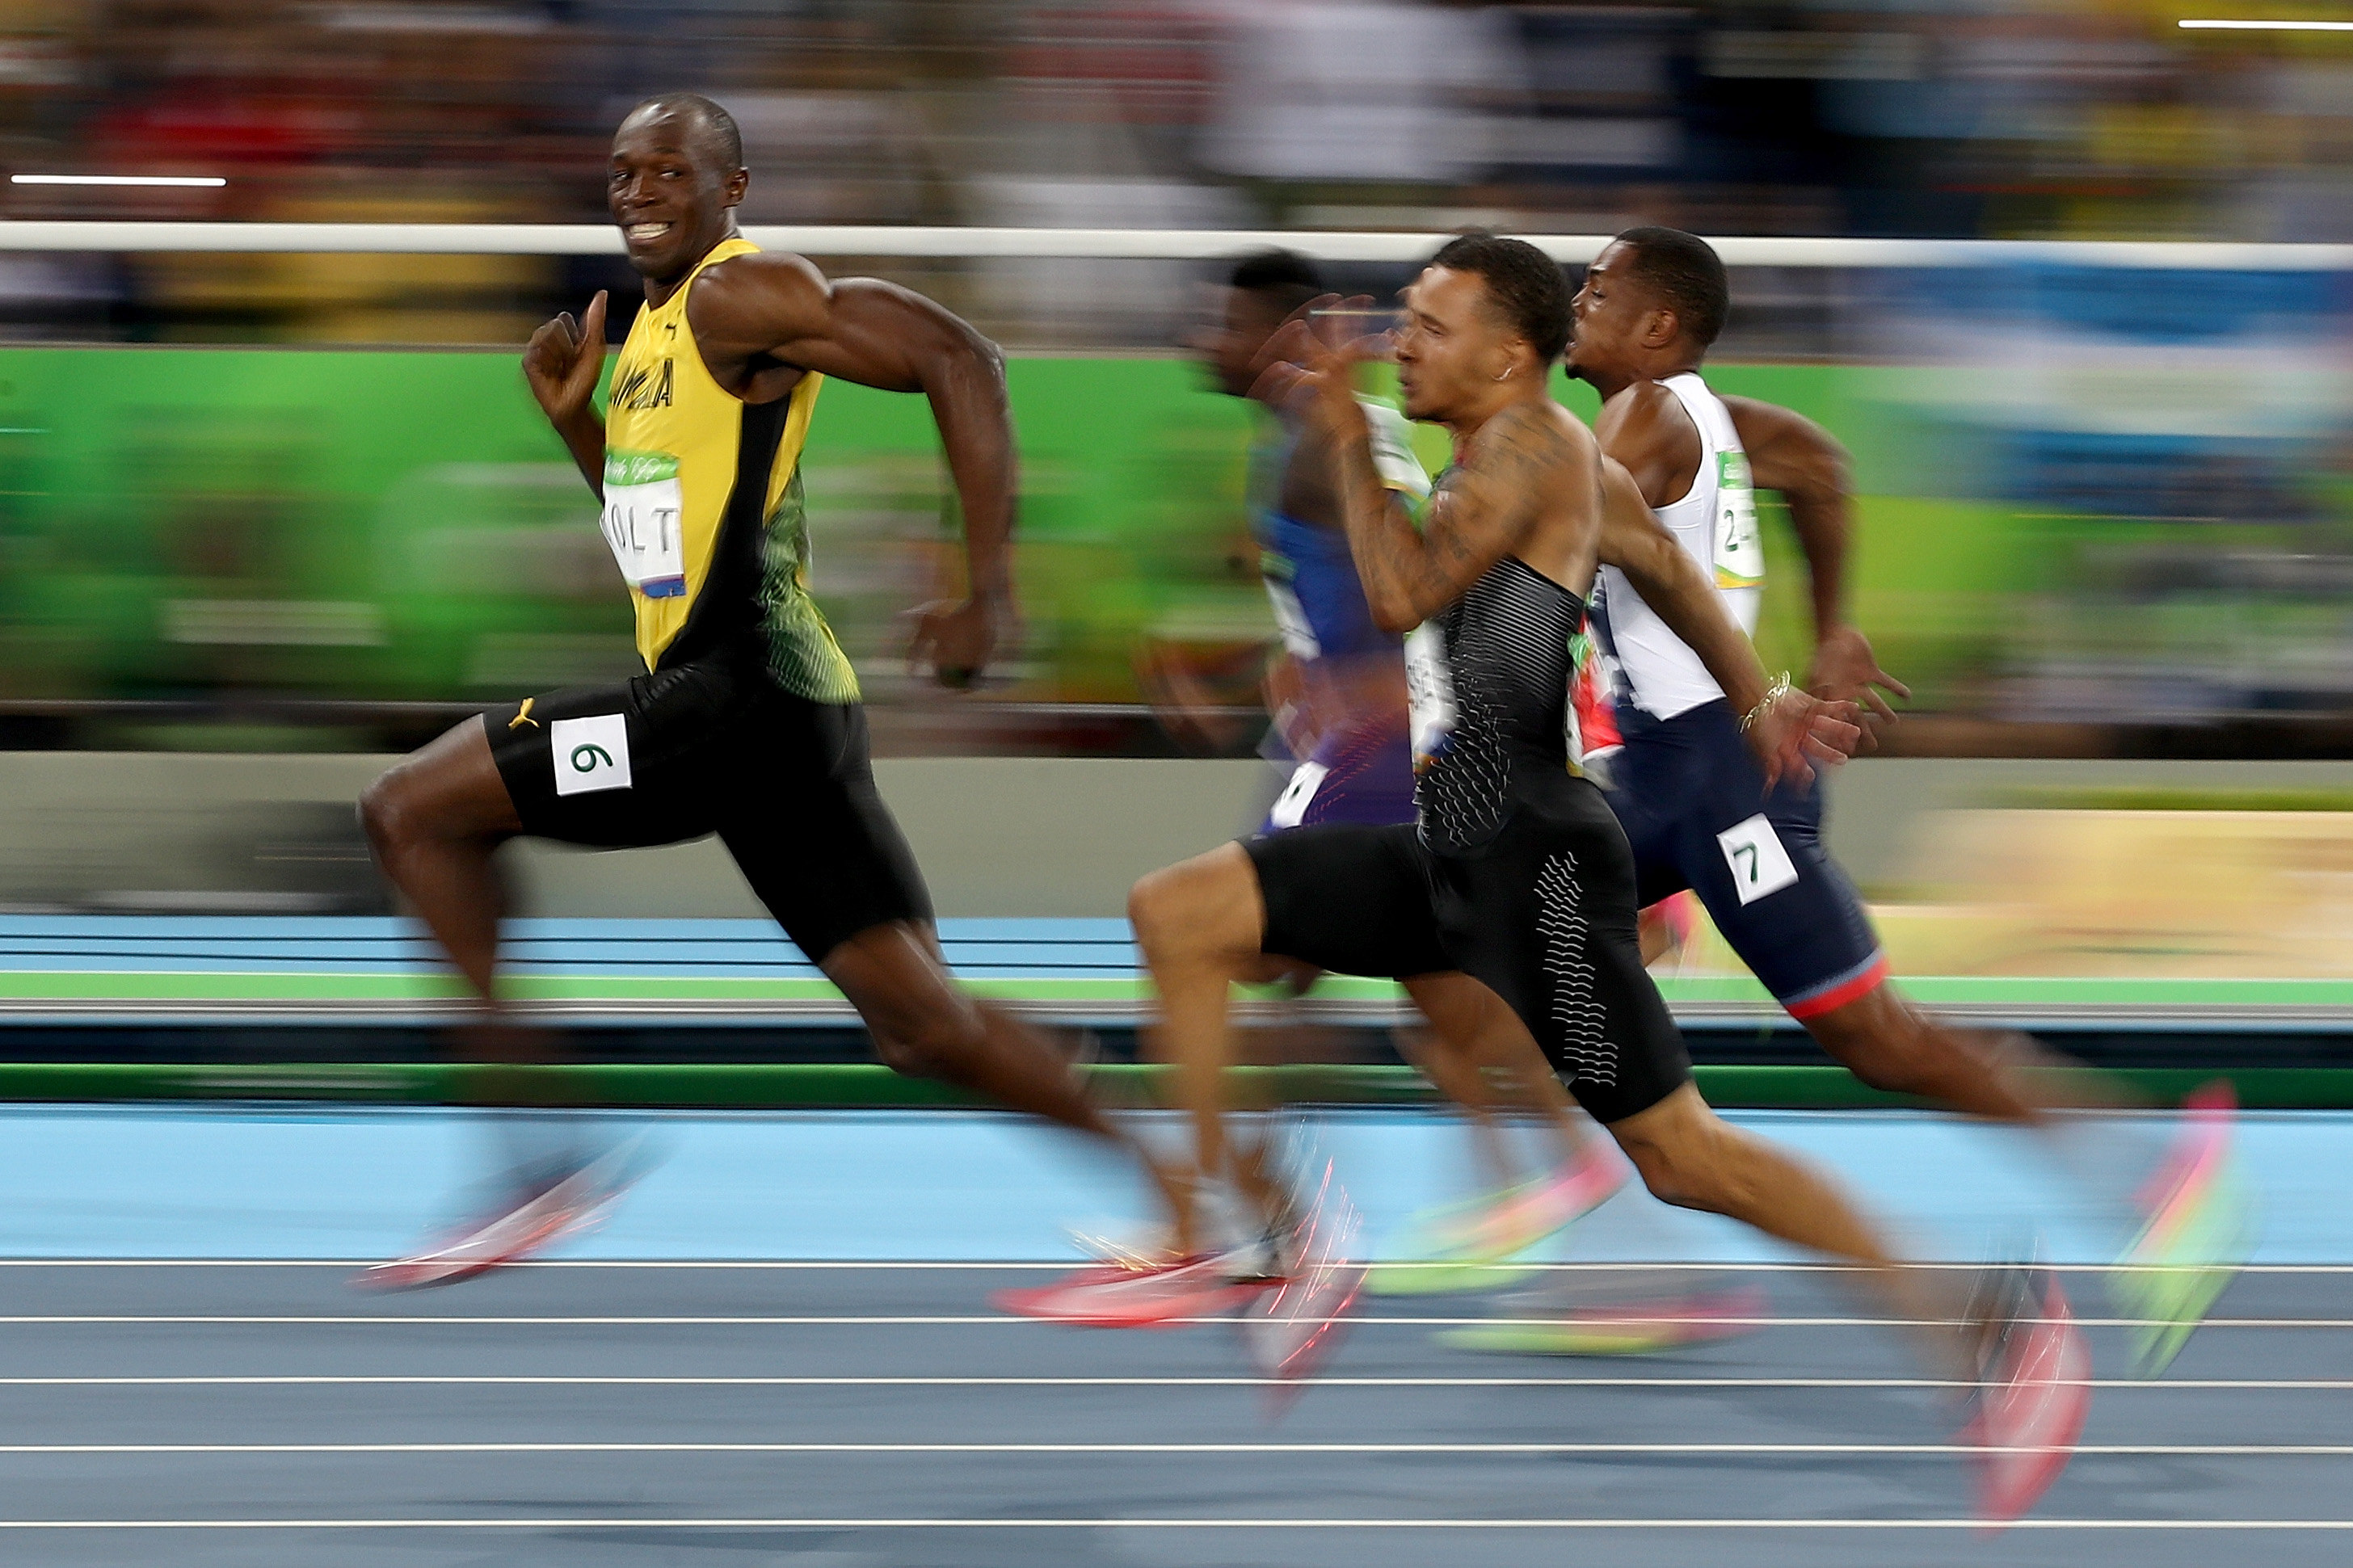 Usain Bolt of Jamaica competes in the Men's 100 meter semifinal on Day 9 of the Rio 2016 Olympic Games in Rio de Janeiro on Aug.14, 2016.